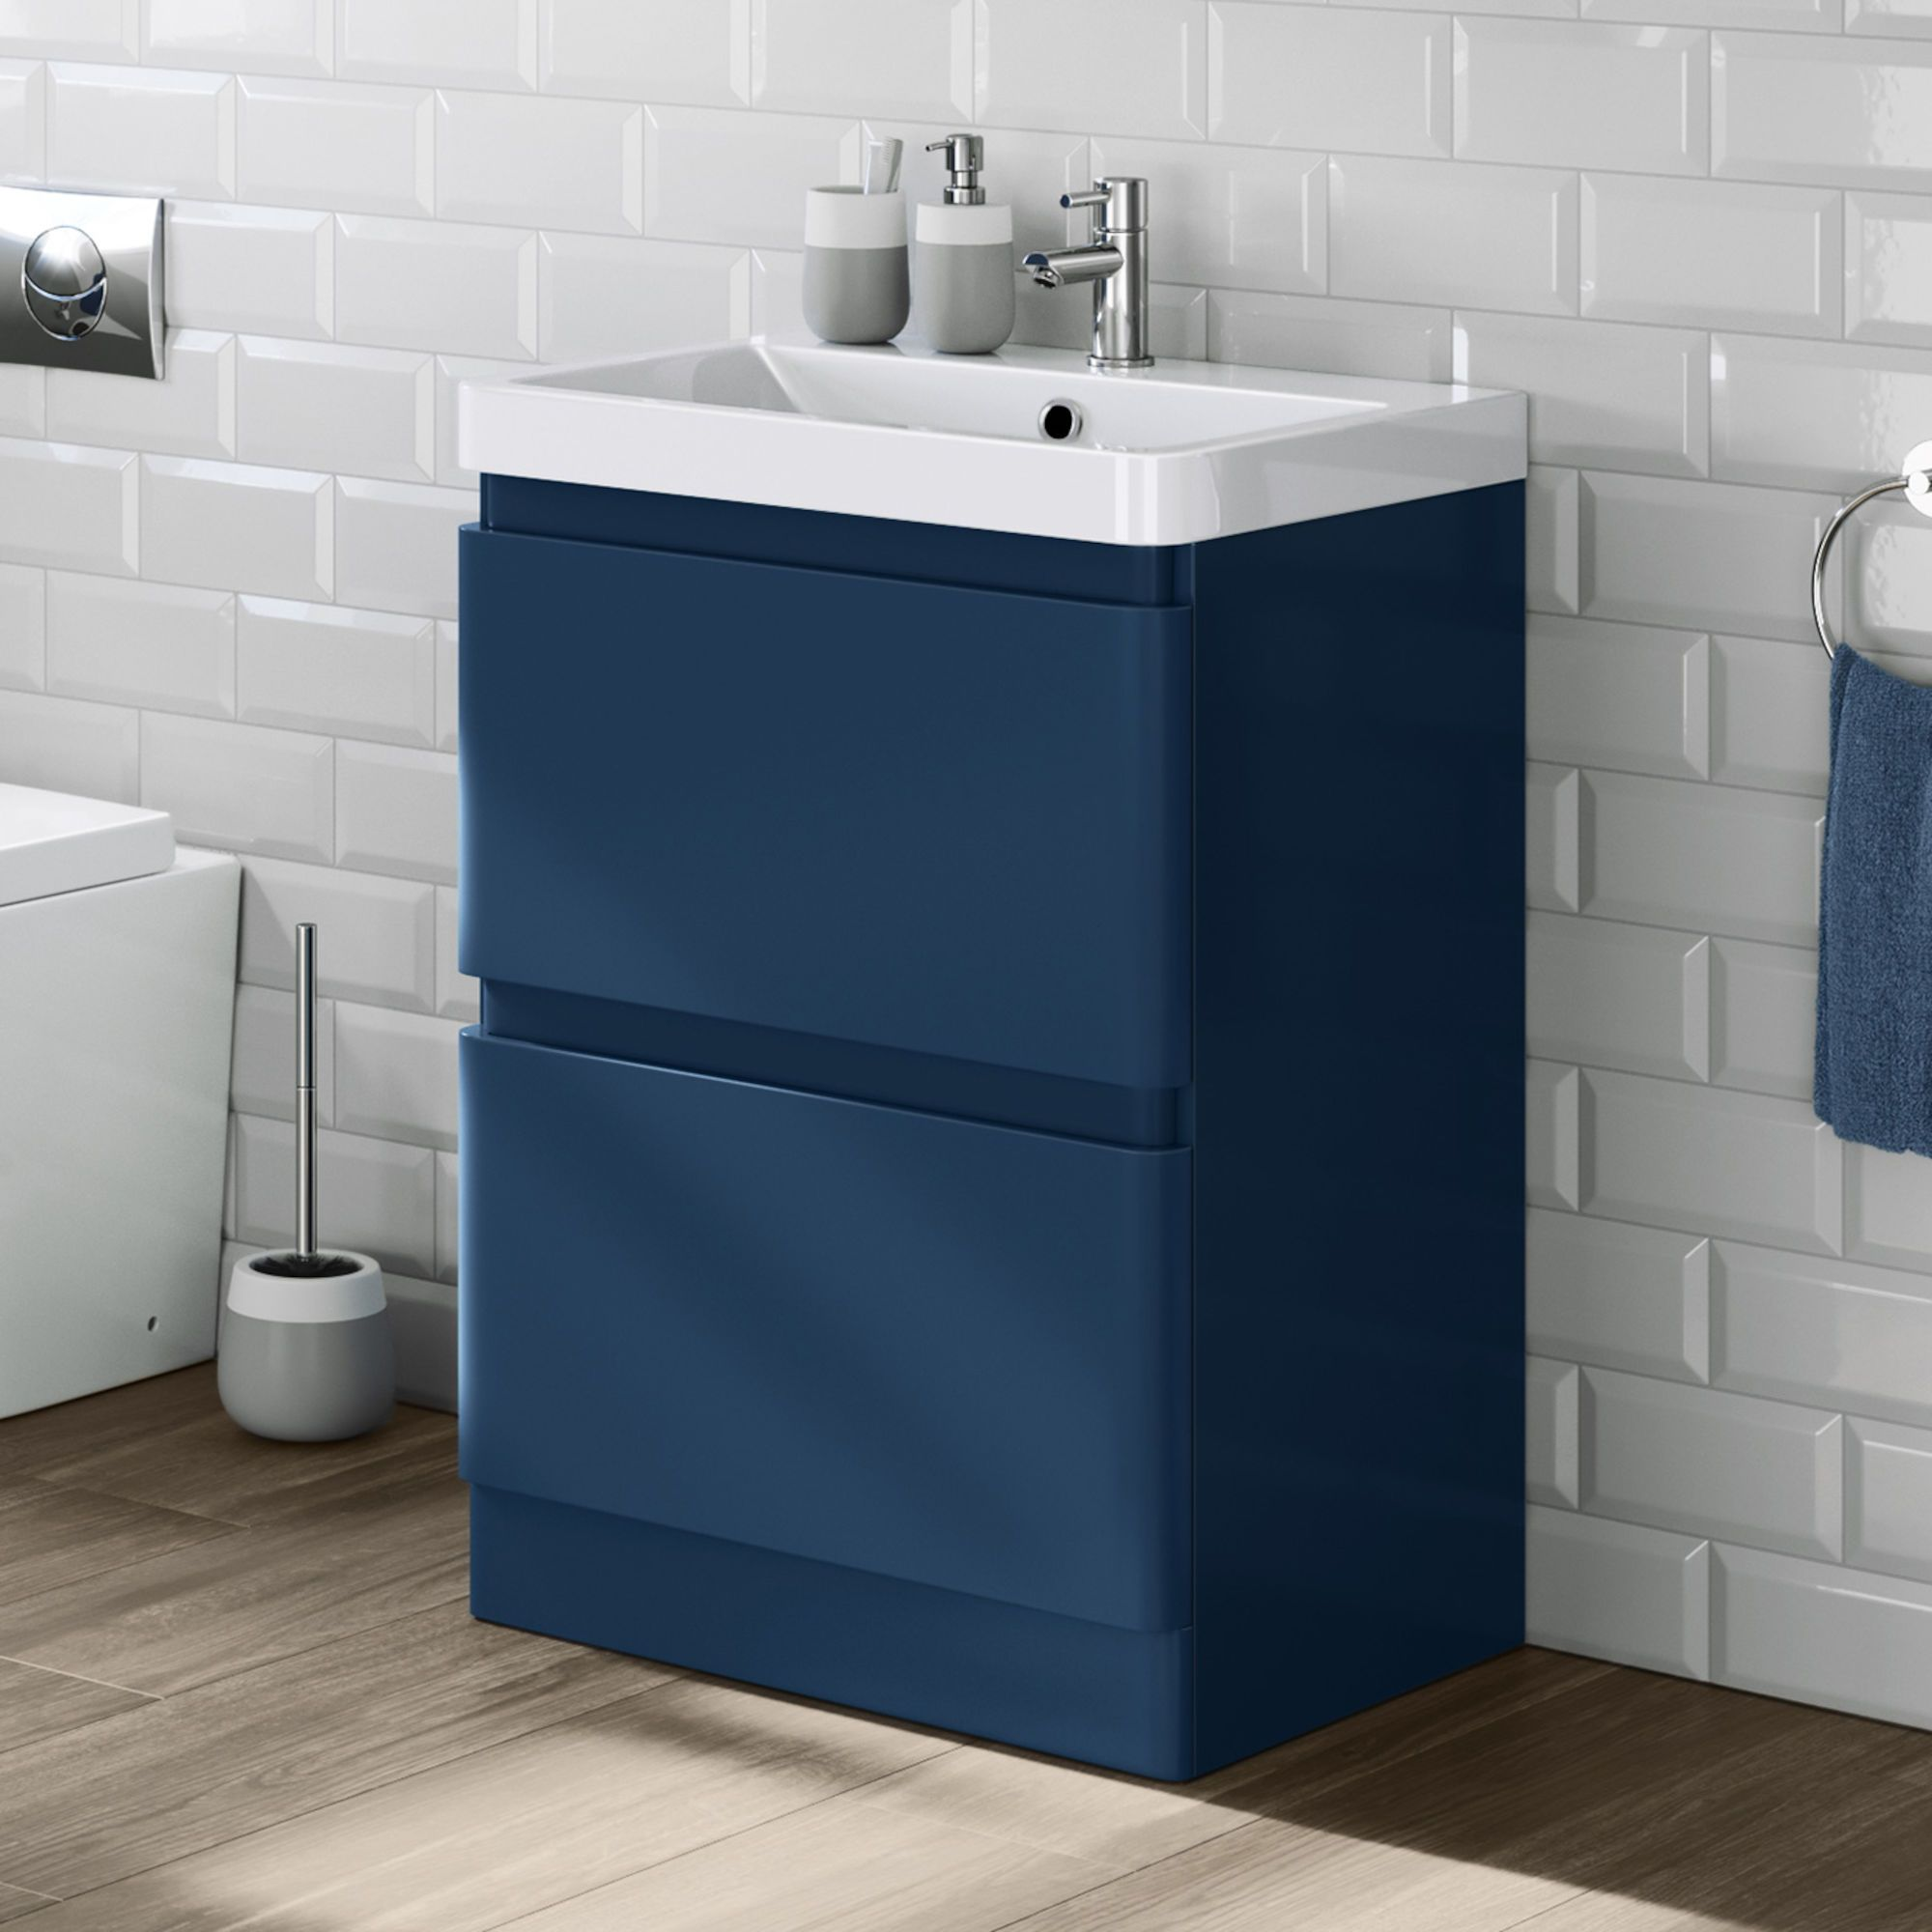 600mm Denver Matte Blue Built In Basin Drawer Unit Floor